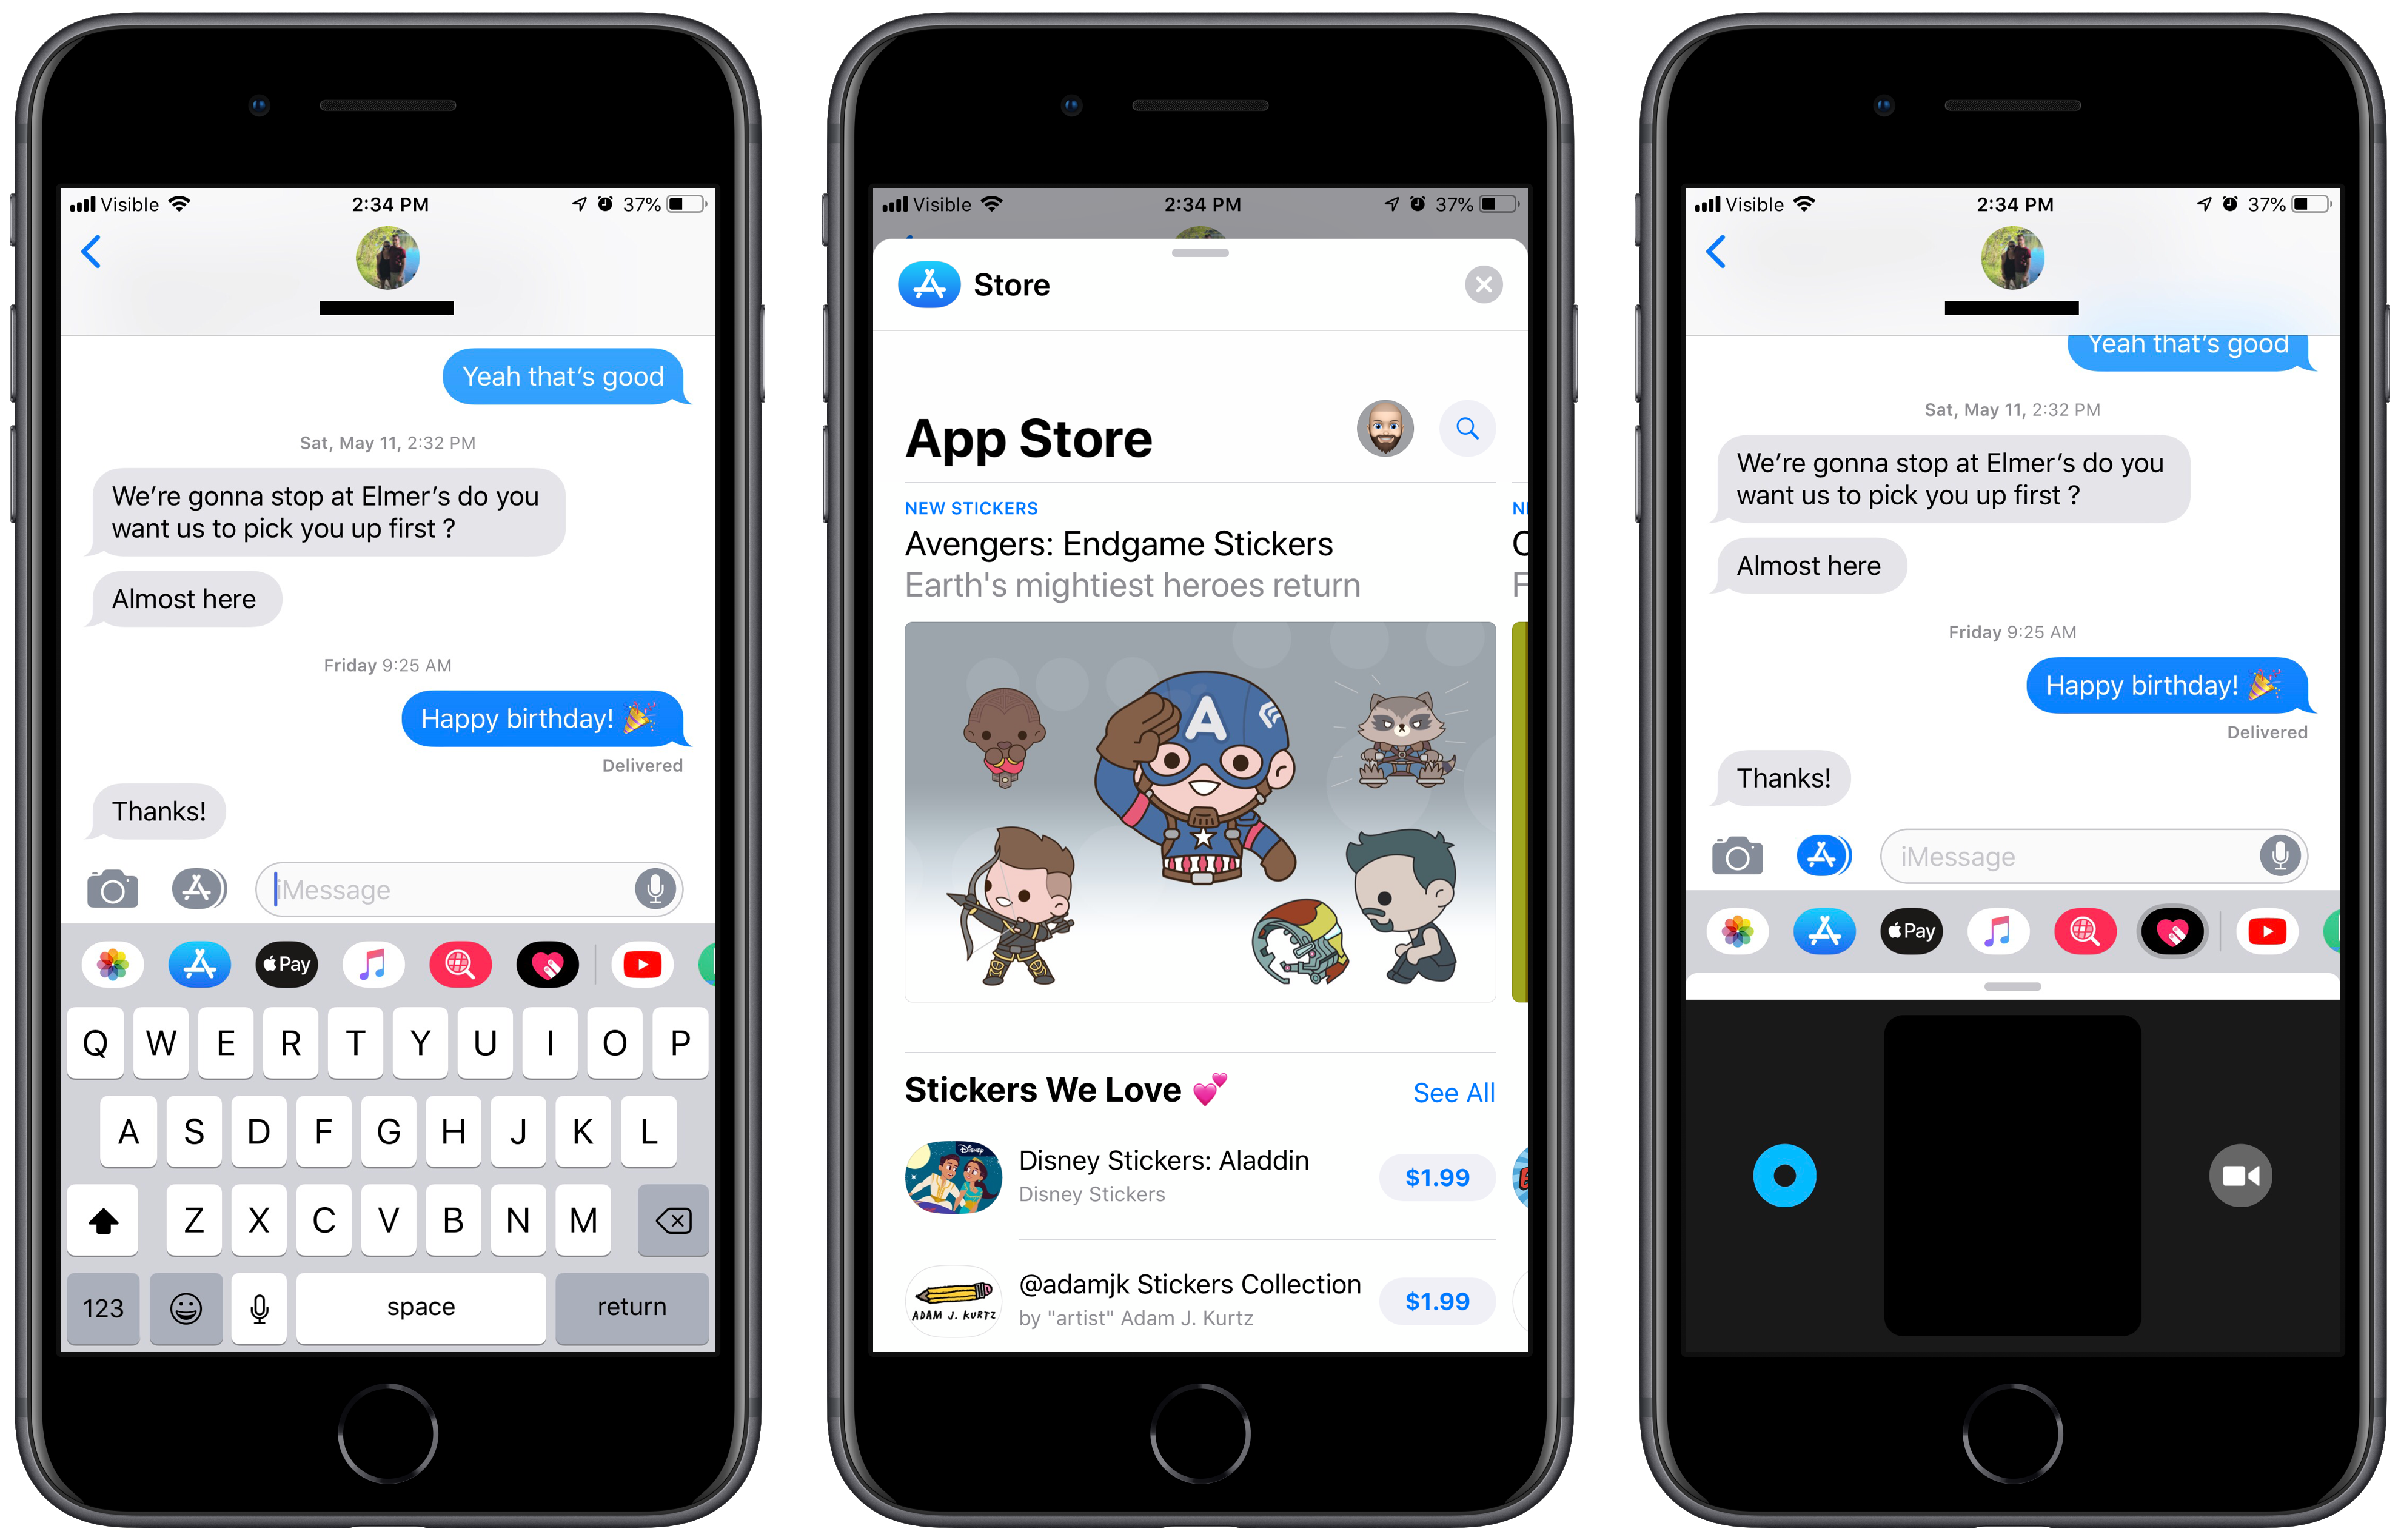 Screenshots of imessage